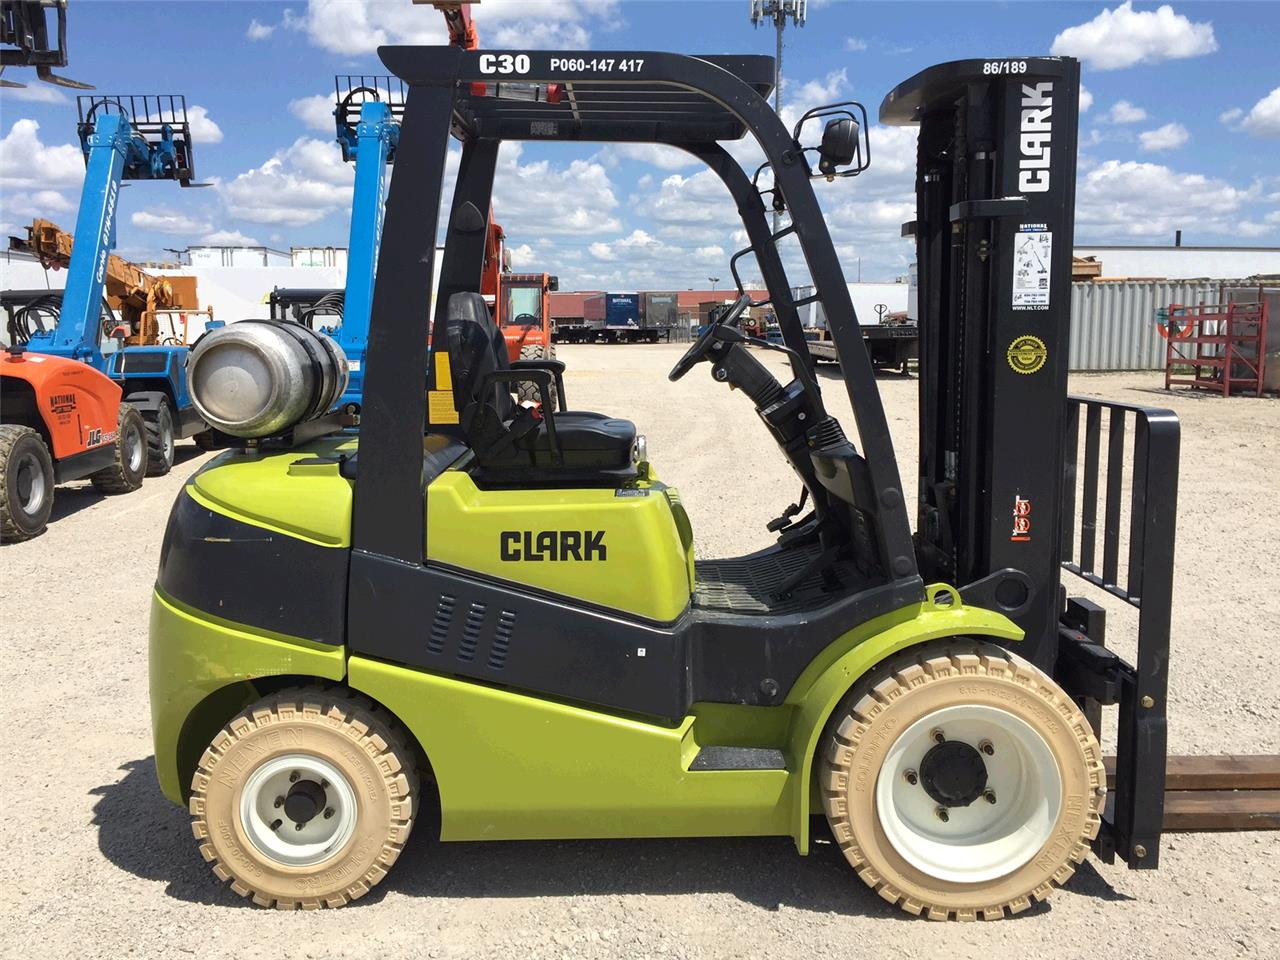 Rent a forklift in Chicago, Forklift Rental, Scissor Lift